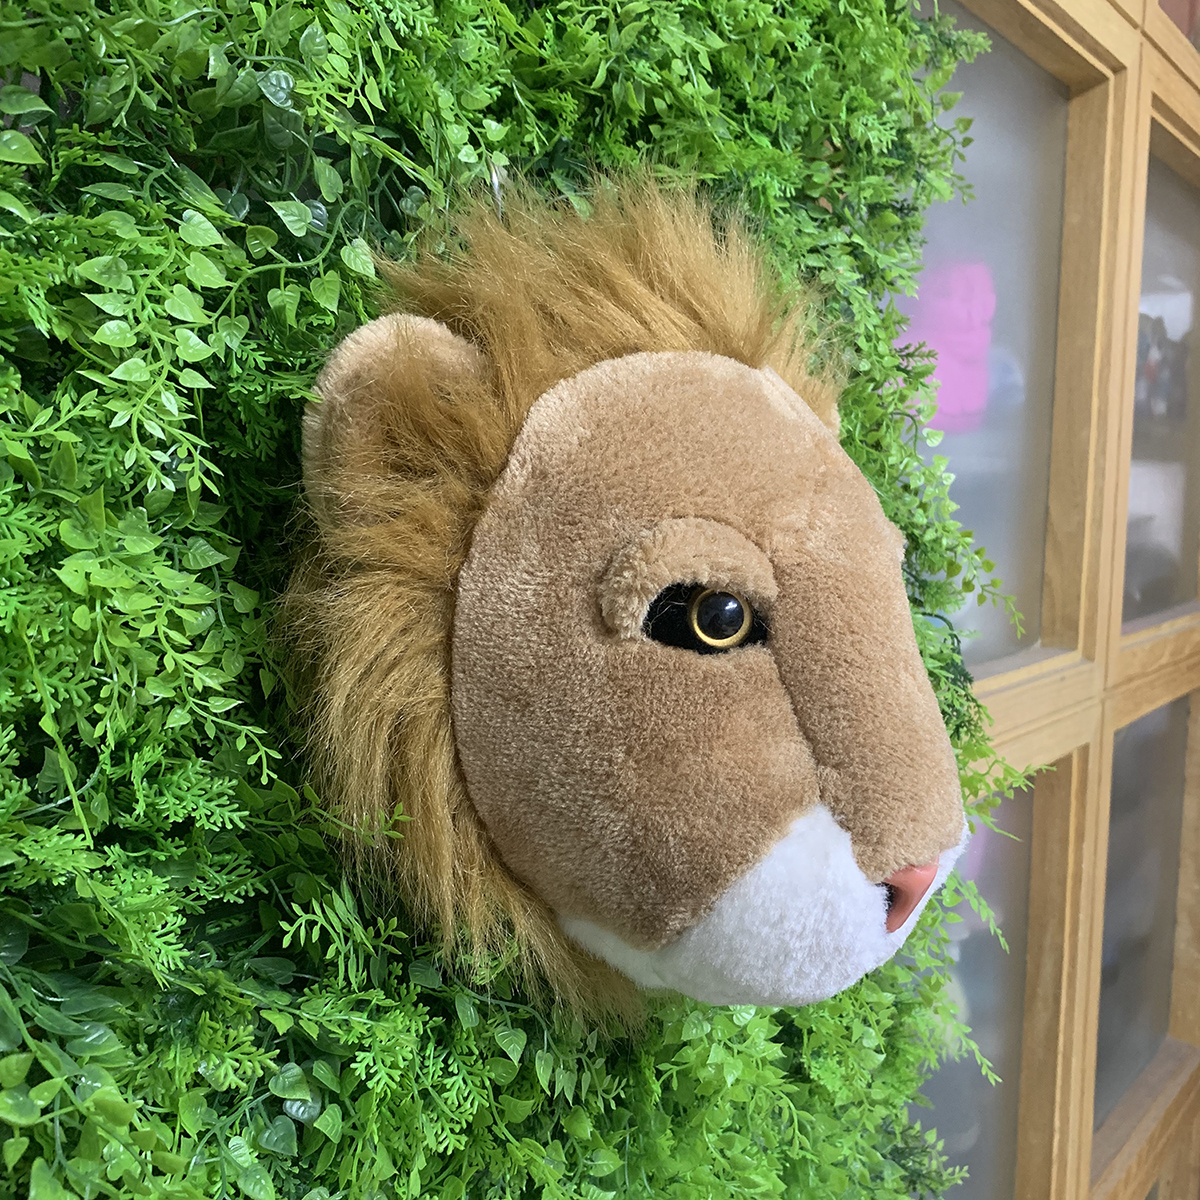 Image 4 - Most popular lifelike wall decoration lion shaped plush animal head toy-in Plush Wall Stuff from Toys & Hobbies